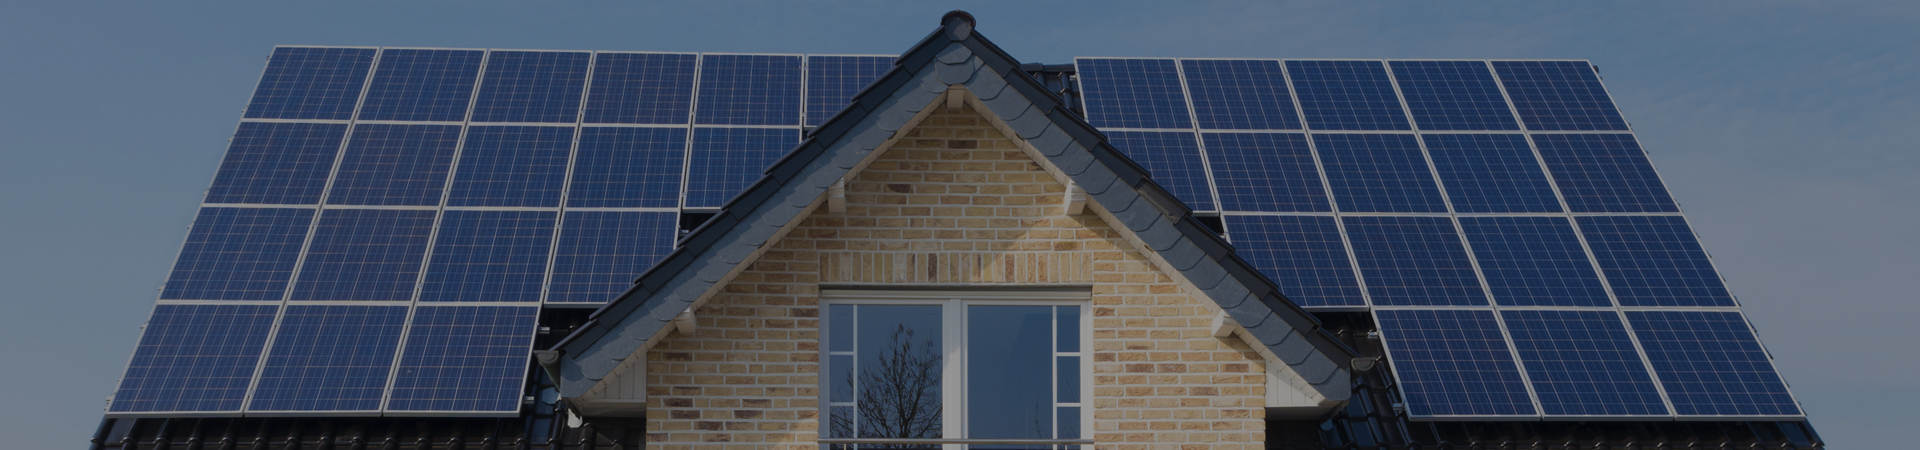 contact solar energy experts